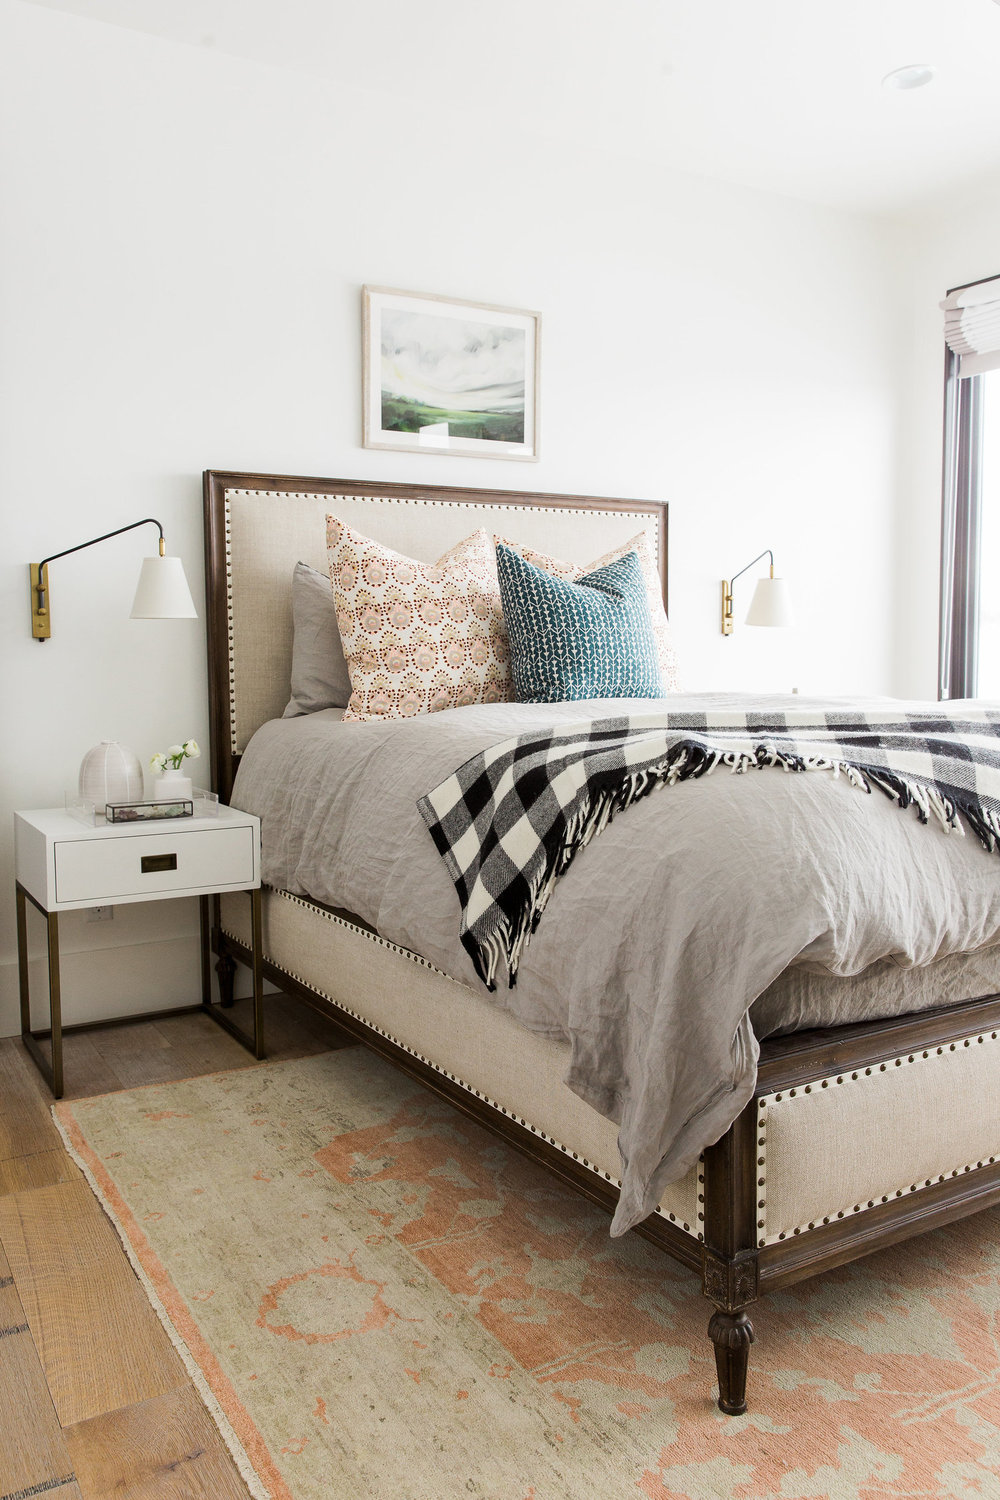 Twin bed with large headboard in bedroom